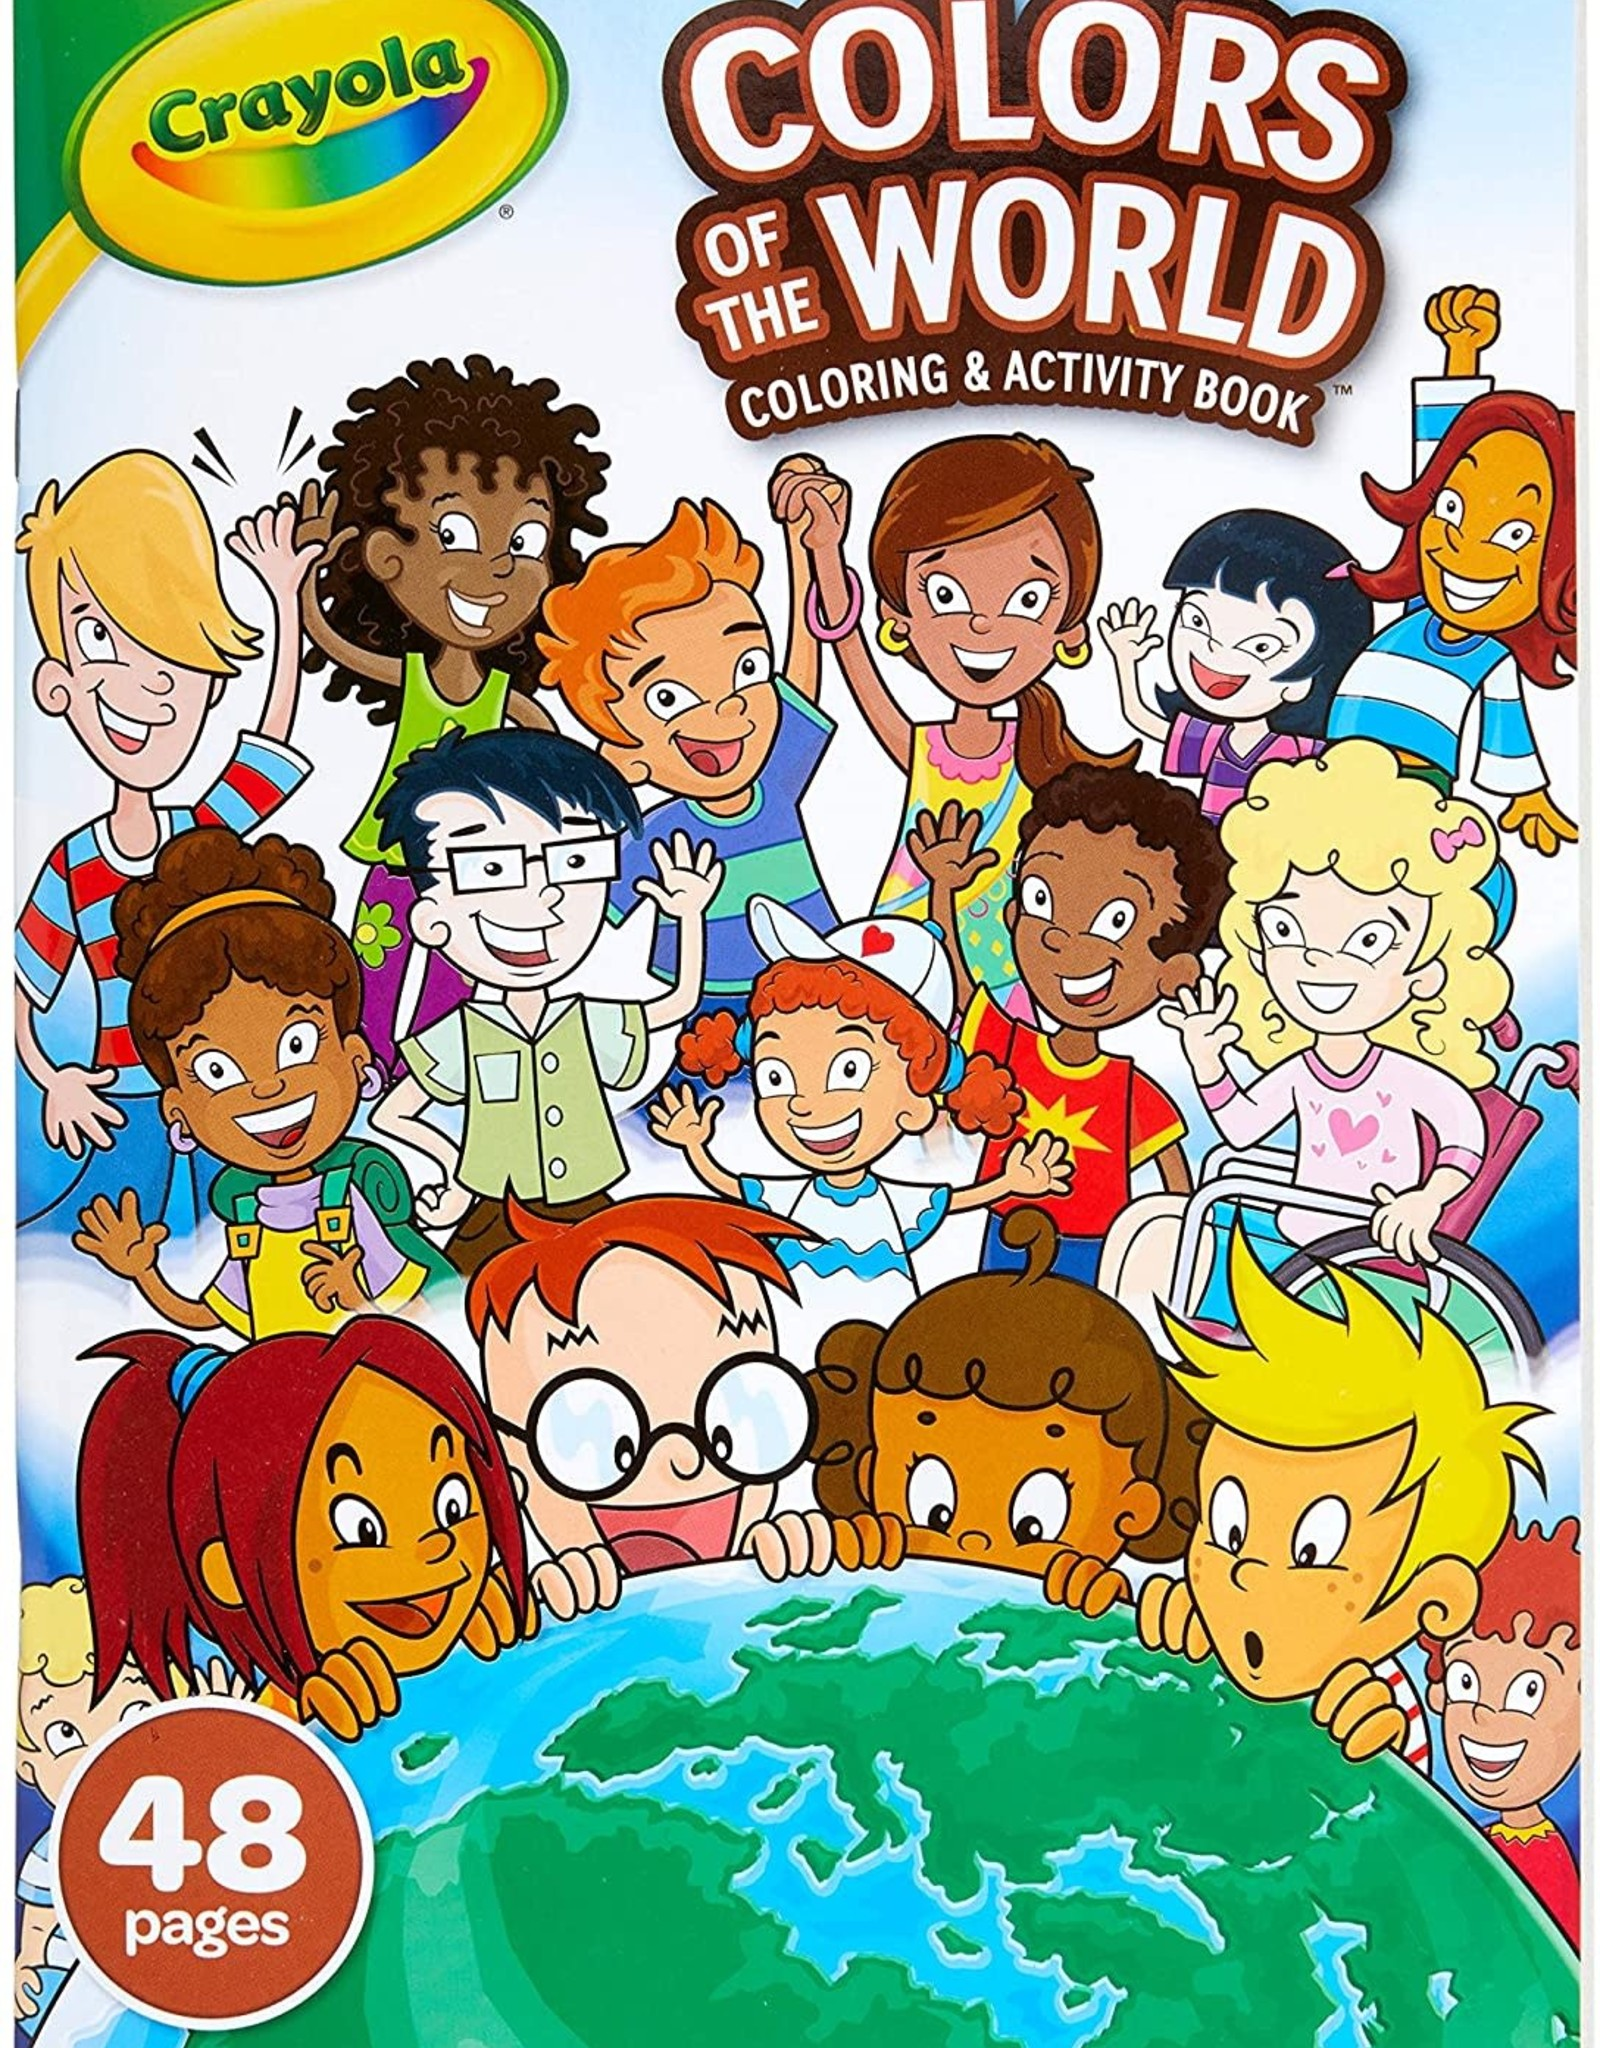 Crayola Colors of the World Colouring & Activity Book